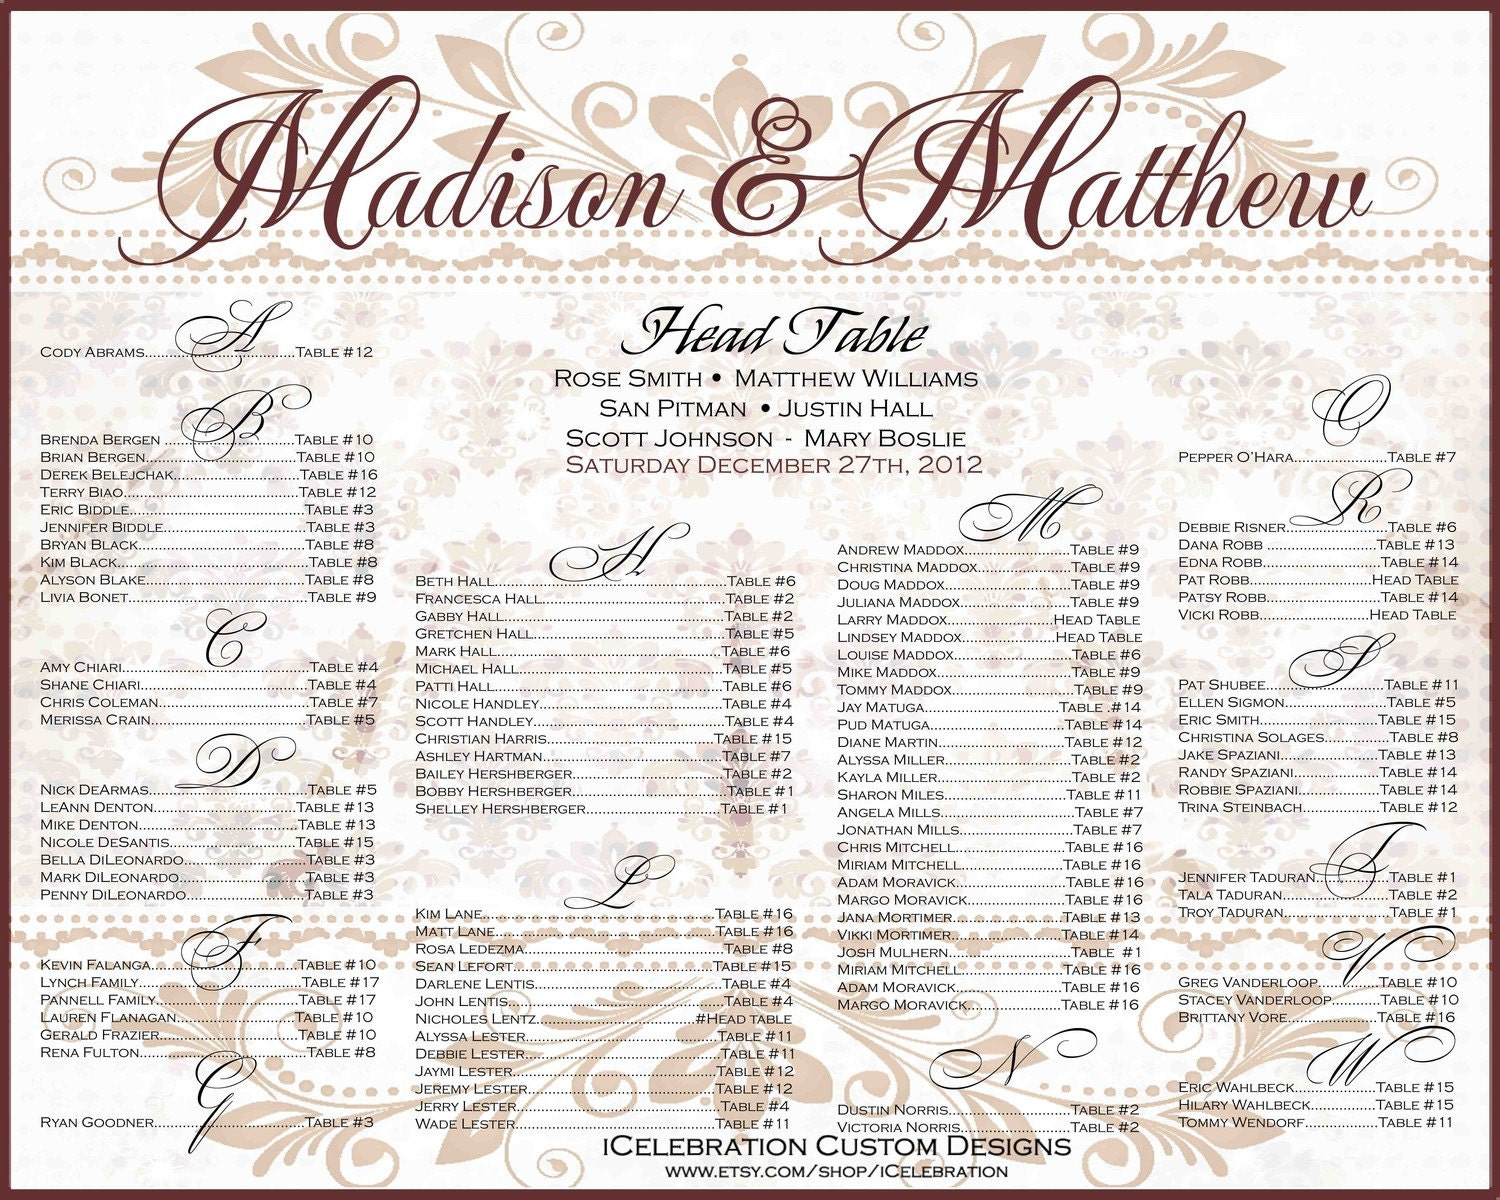 Doc570413 Seating Chart Poster Template Wedding Seating Chart – Free Seating Chart Template for Wedding Reception